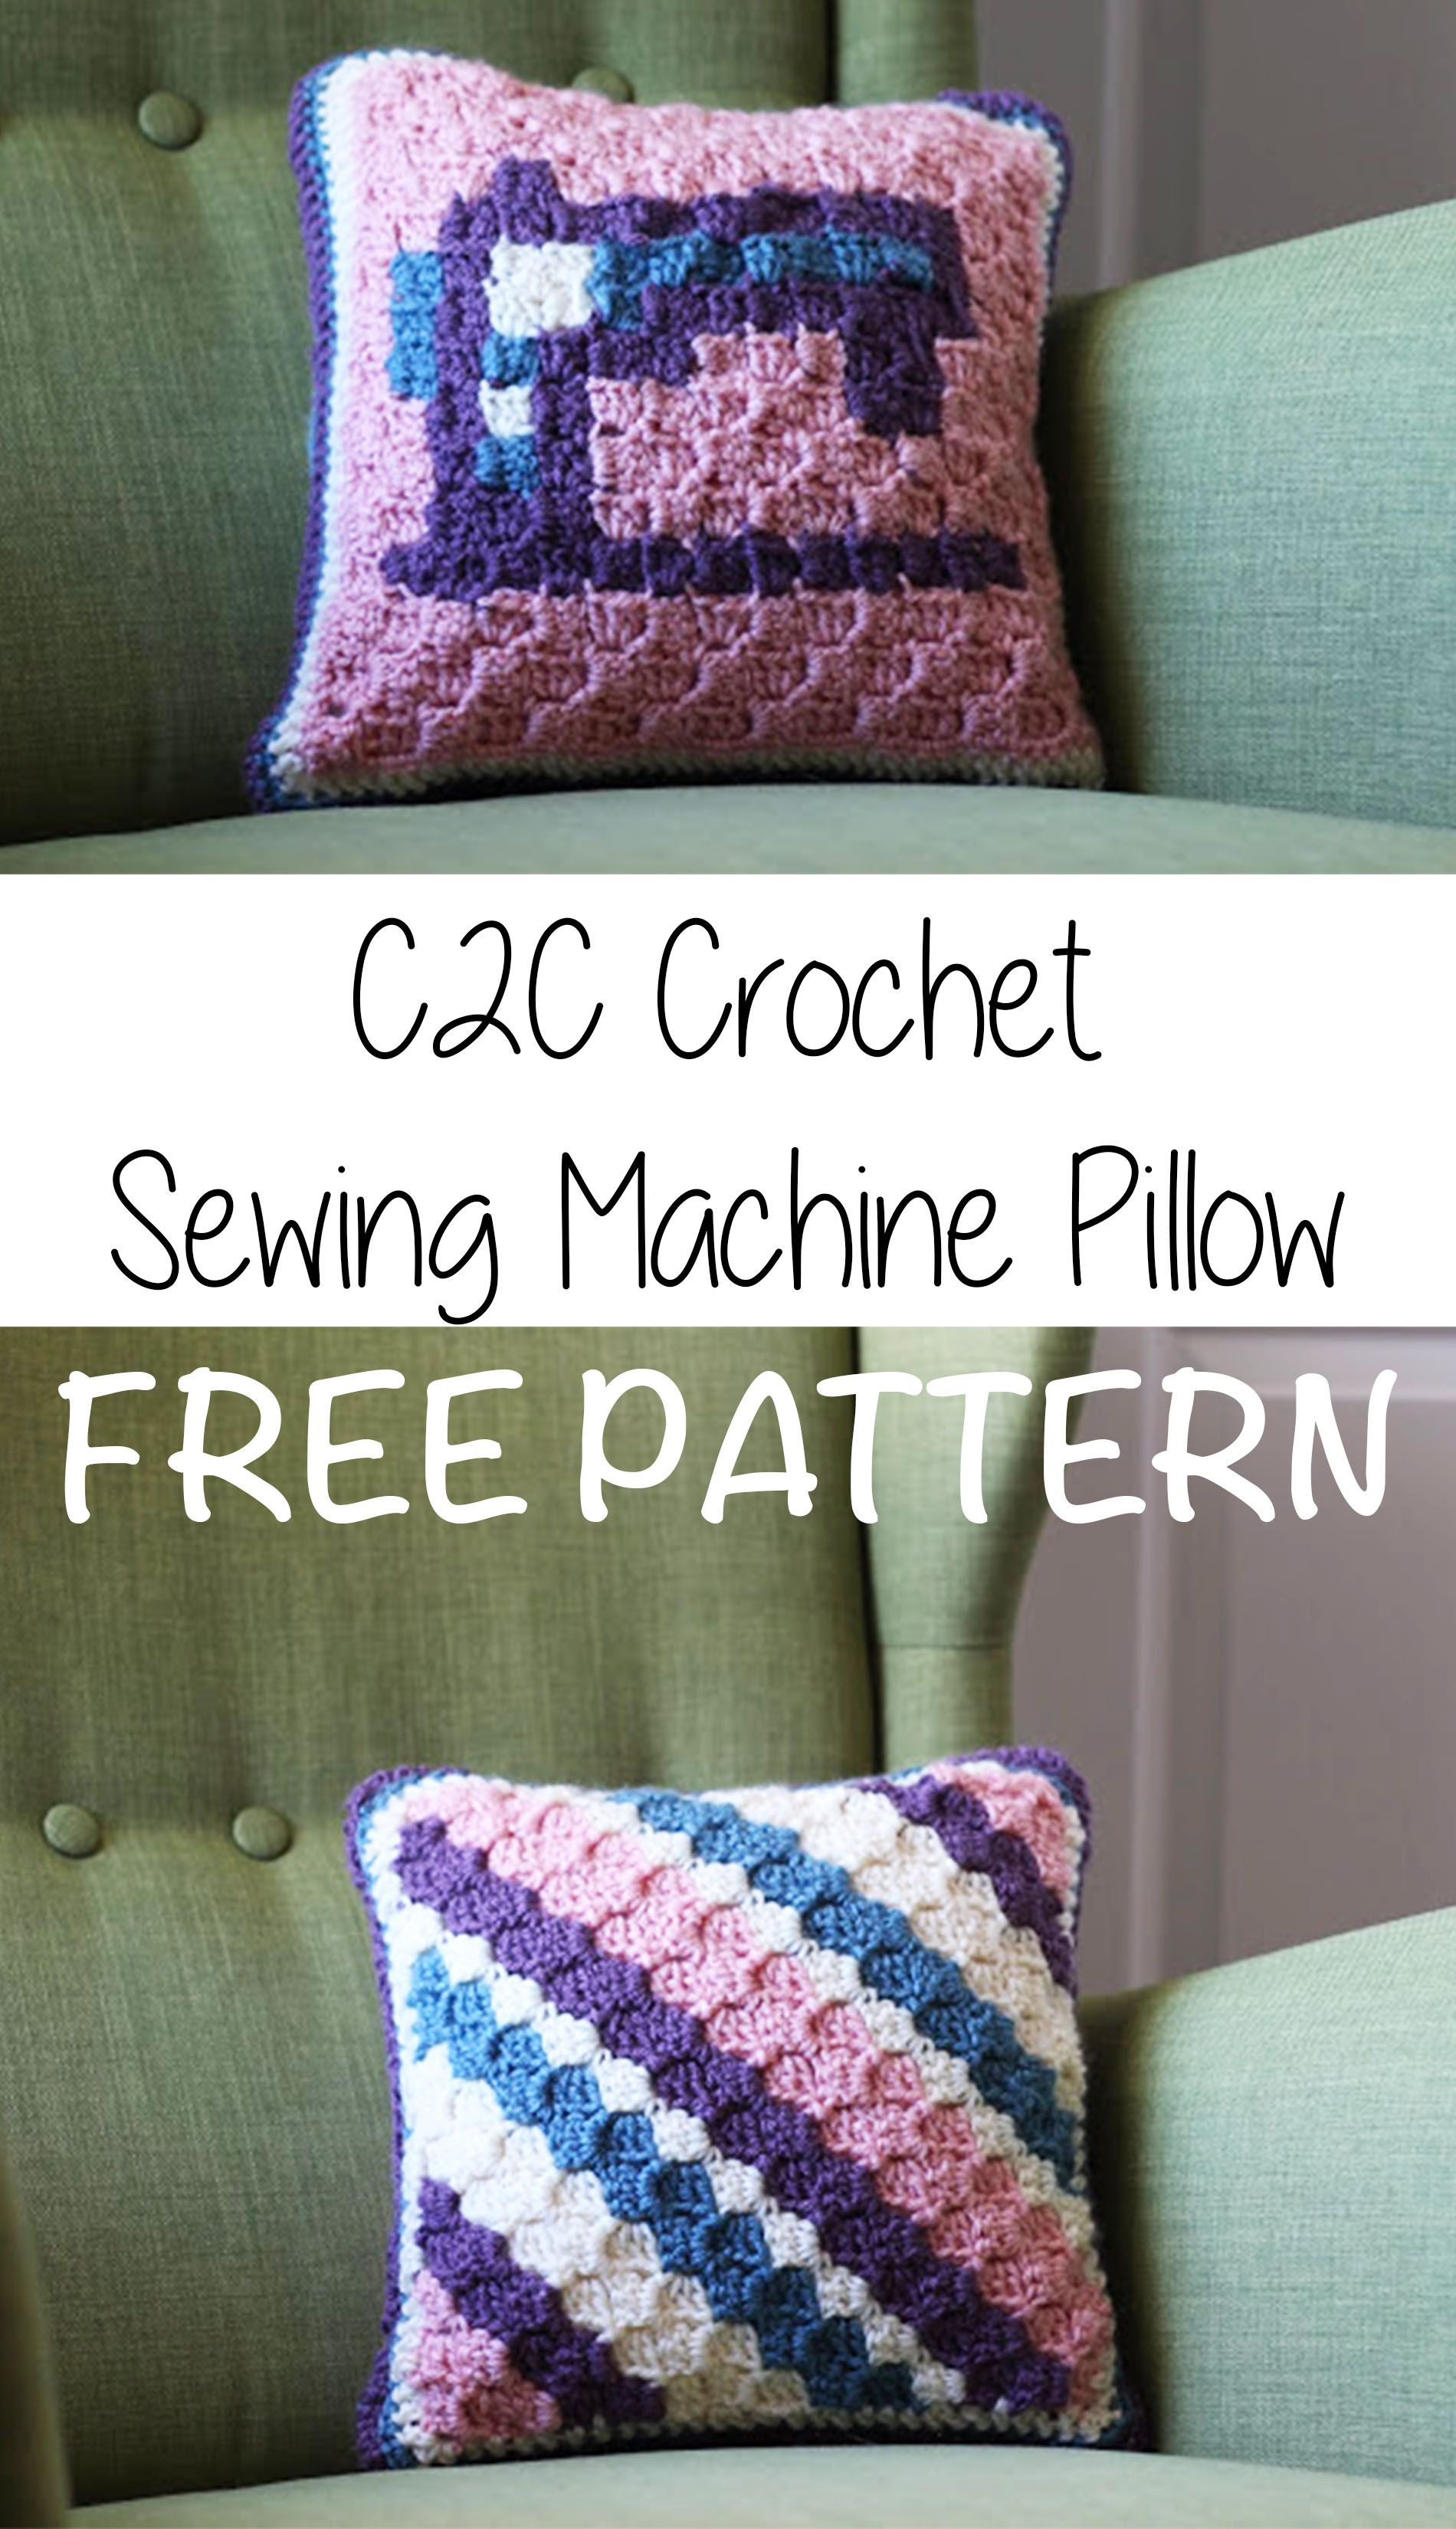 C2C Crochet Sewing Machine Pillow | Super easy, Corner and Crochet